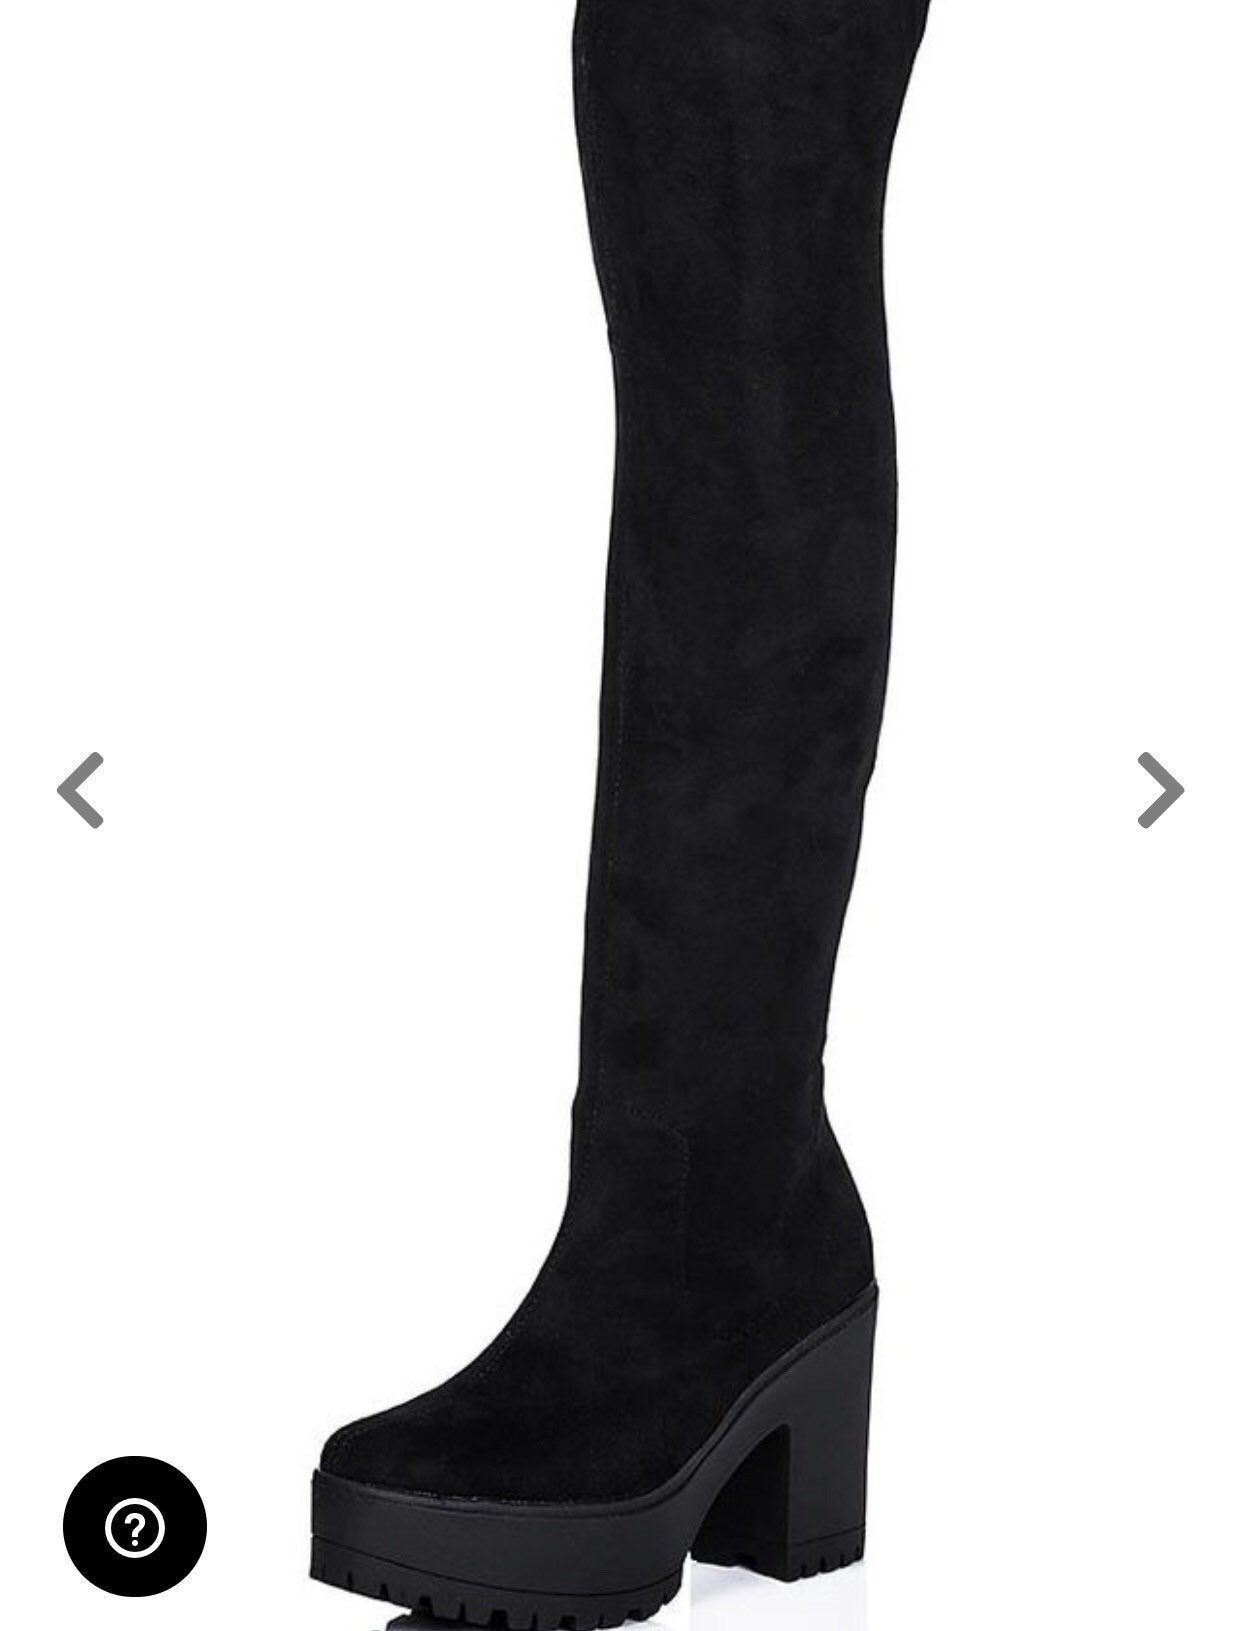 0e5ab184e8acf Wistle cleated sole stretch over knee boots black suede style   Etsy